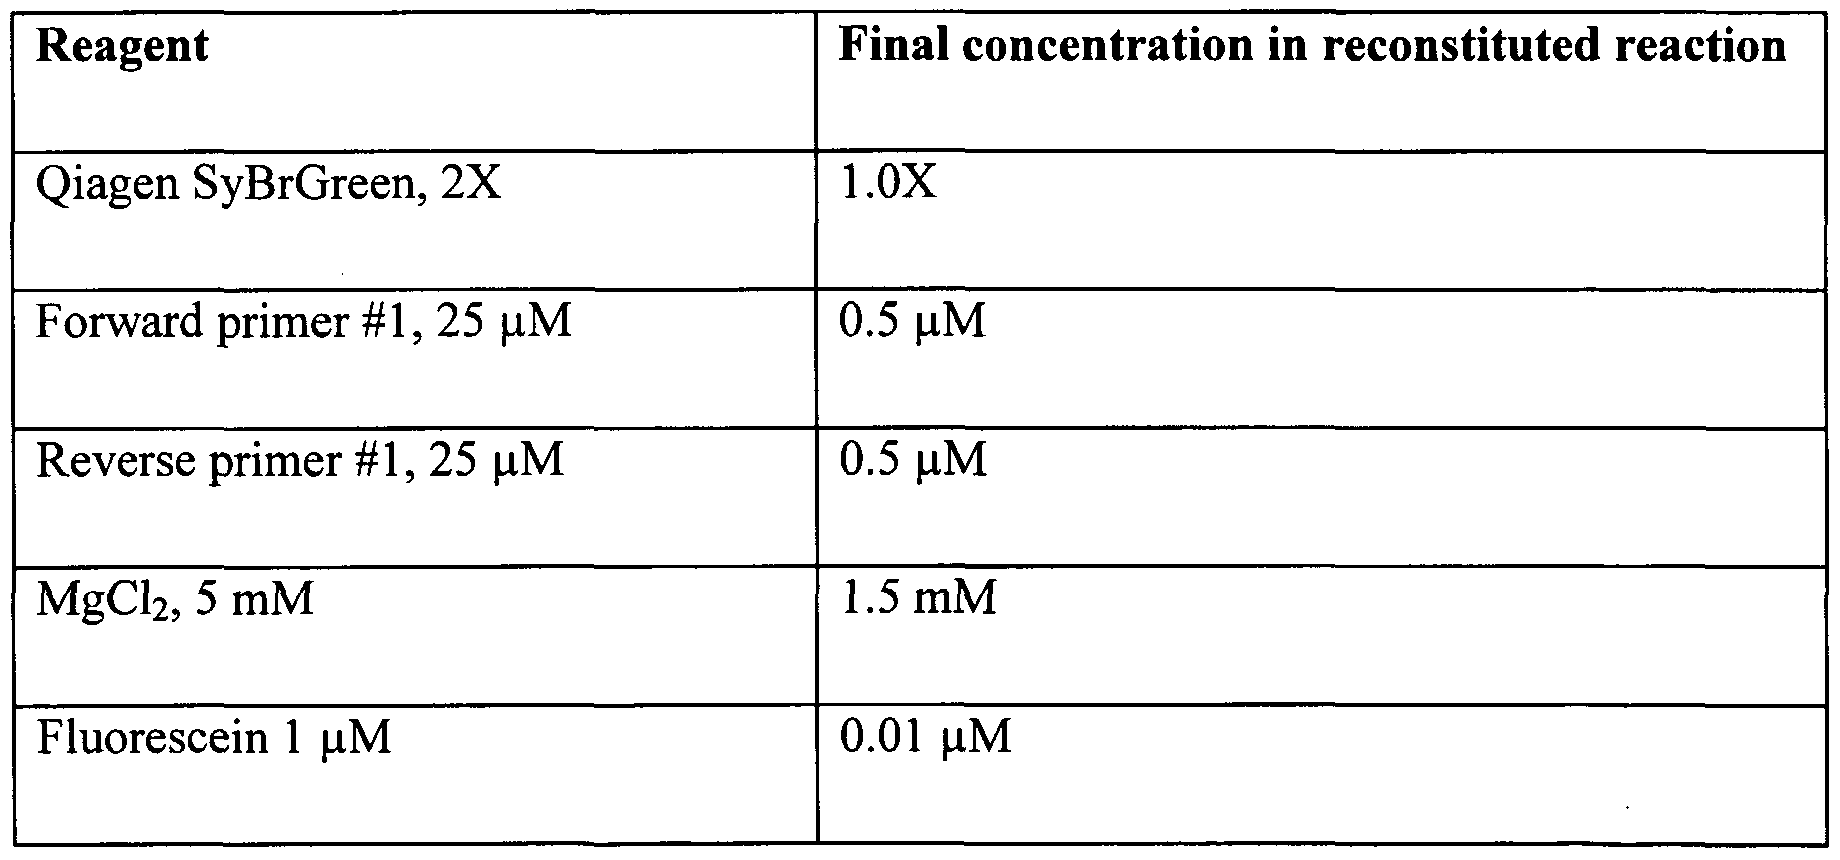 escherichia coli 0157 h7 essay example Colorimetric paper-based detection of escherichia coli, salmonella spp, and   are hampered by sporadic contamination, small sample sizes tested, the  for  concentration of salmonella and escherichia coli o157:h7 from.